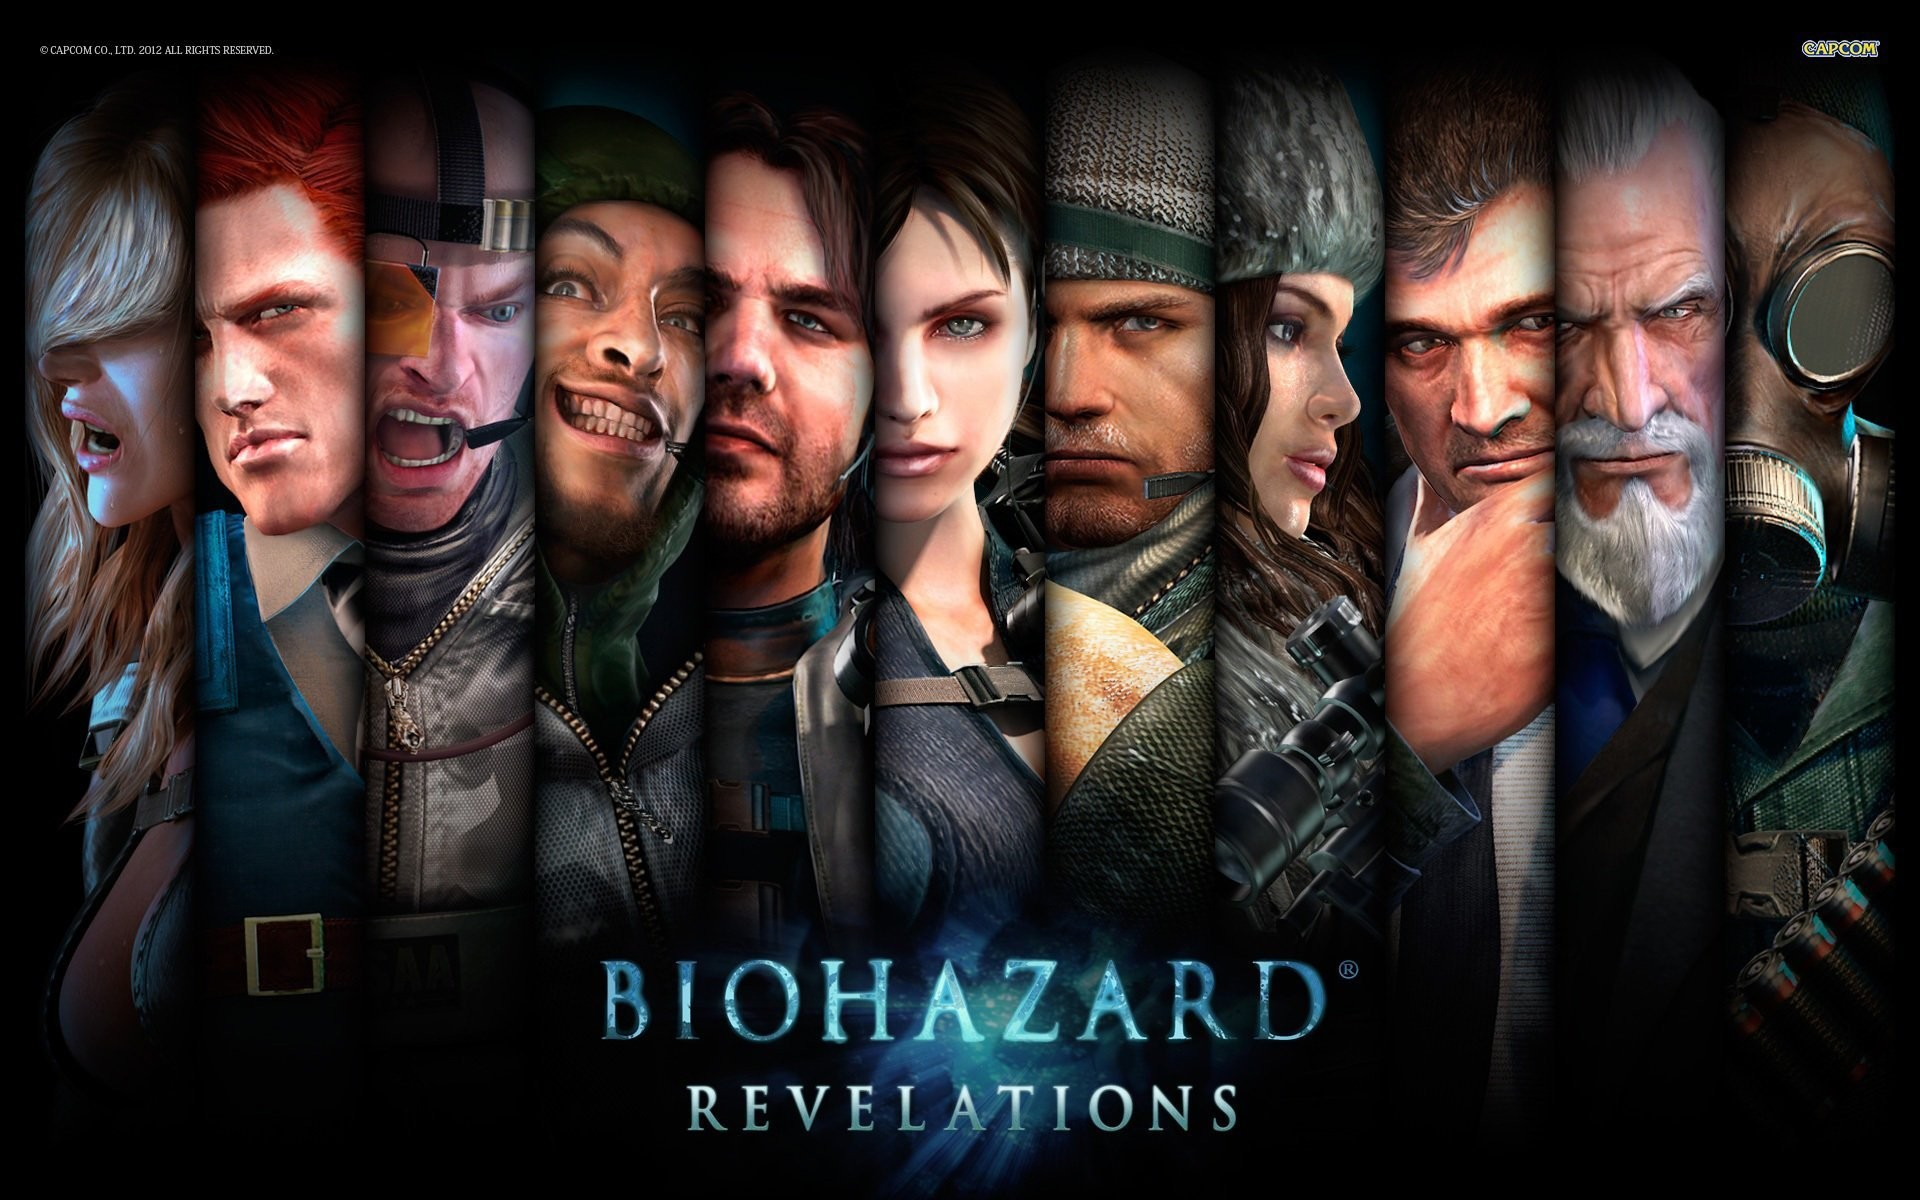 resident evil: revelations characters characters resident evil :  revelations jill valentine jill valentine parker luciani